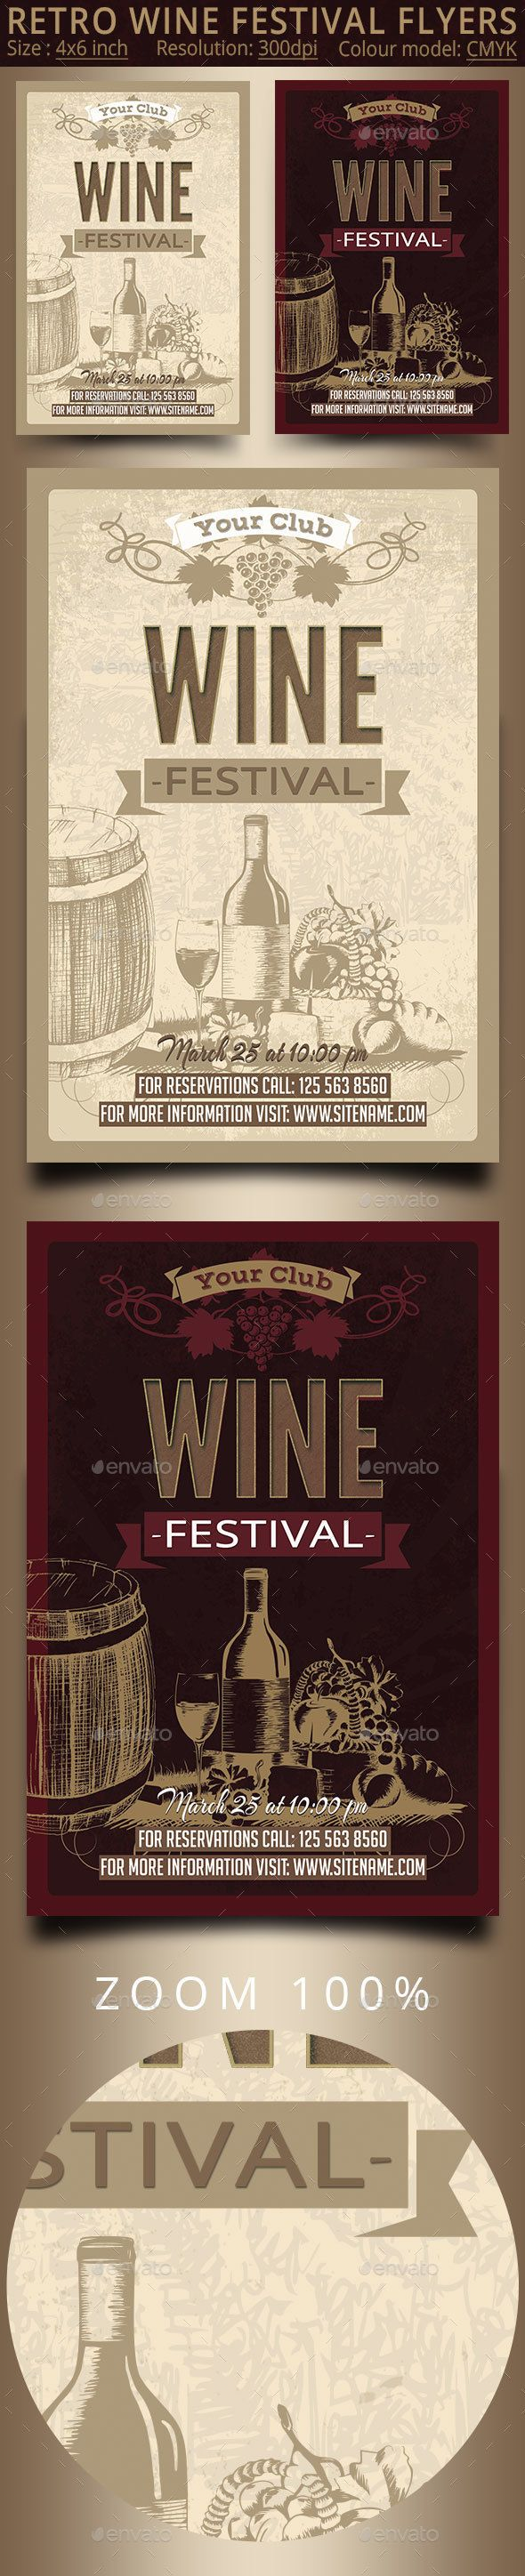 Retro wine festival flyers wine festival flyer template and wine retro wine festival flyers maxwellsz